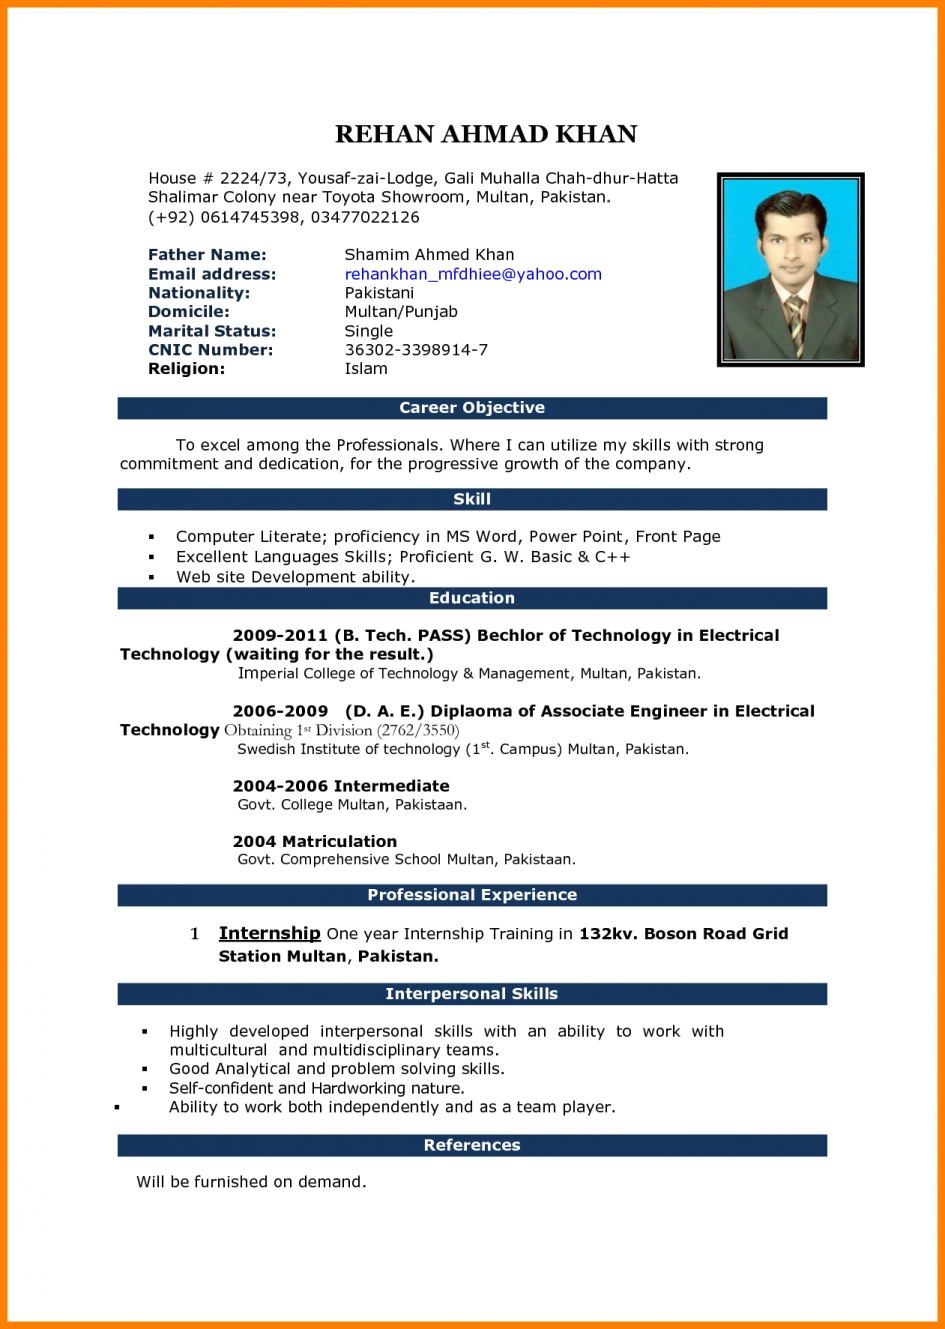 Curriculum Vitae Template Word Document